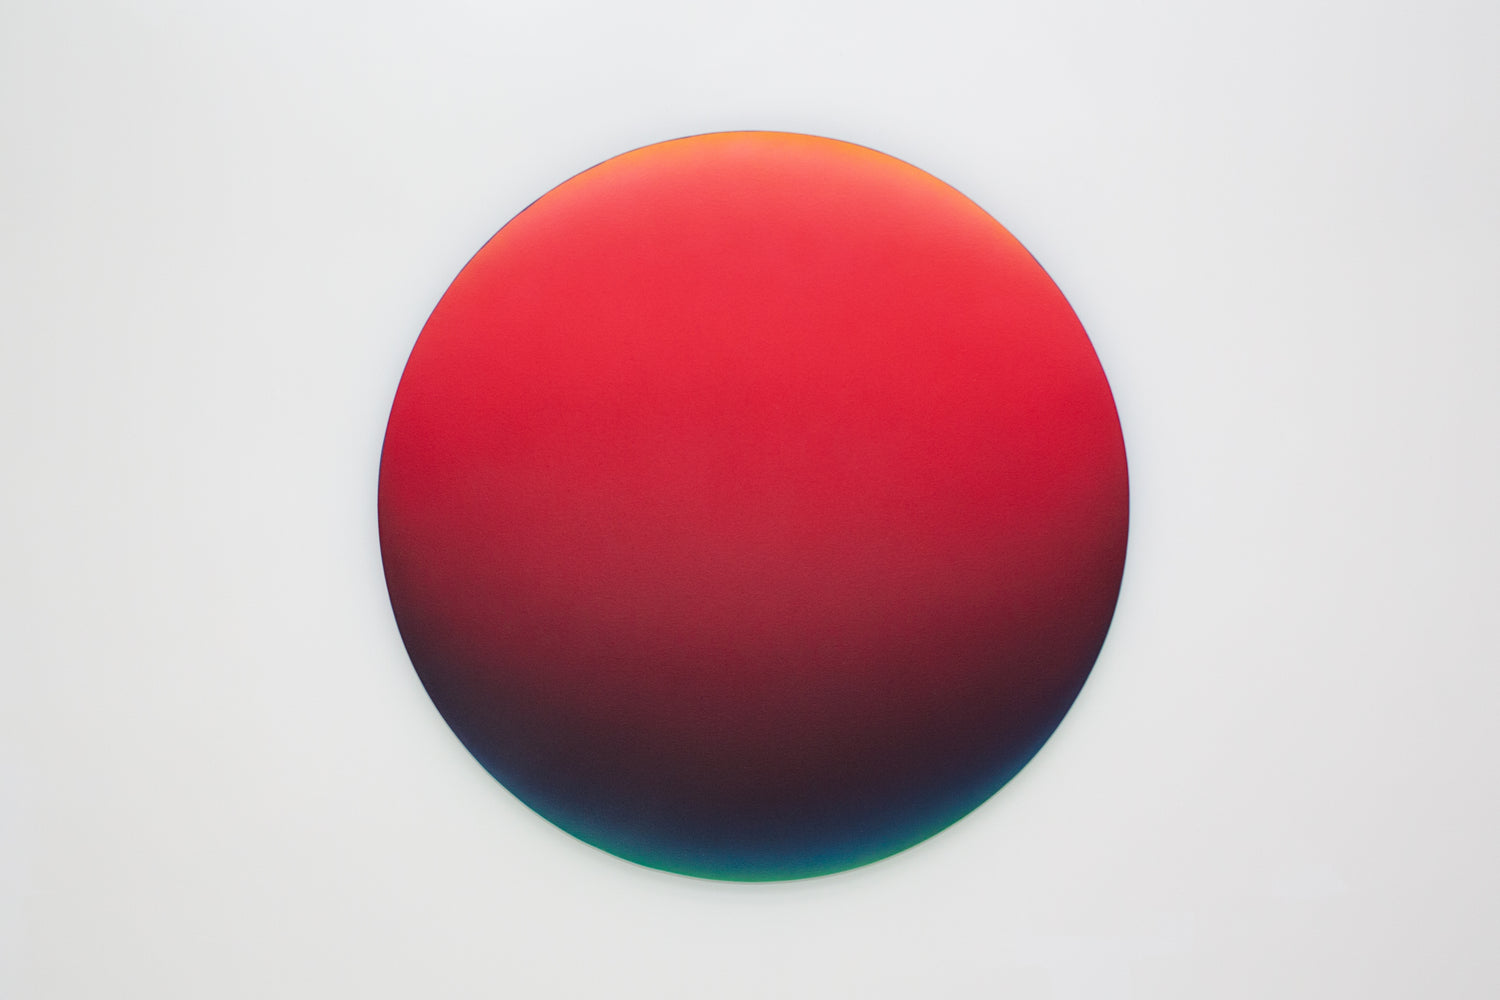 Jan Kálab: Red Gradient 1242pm, 2018